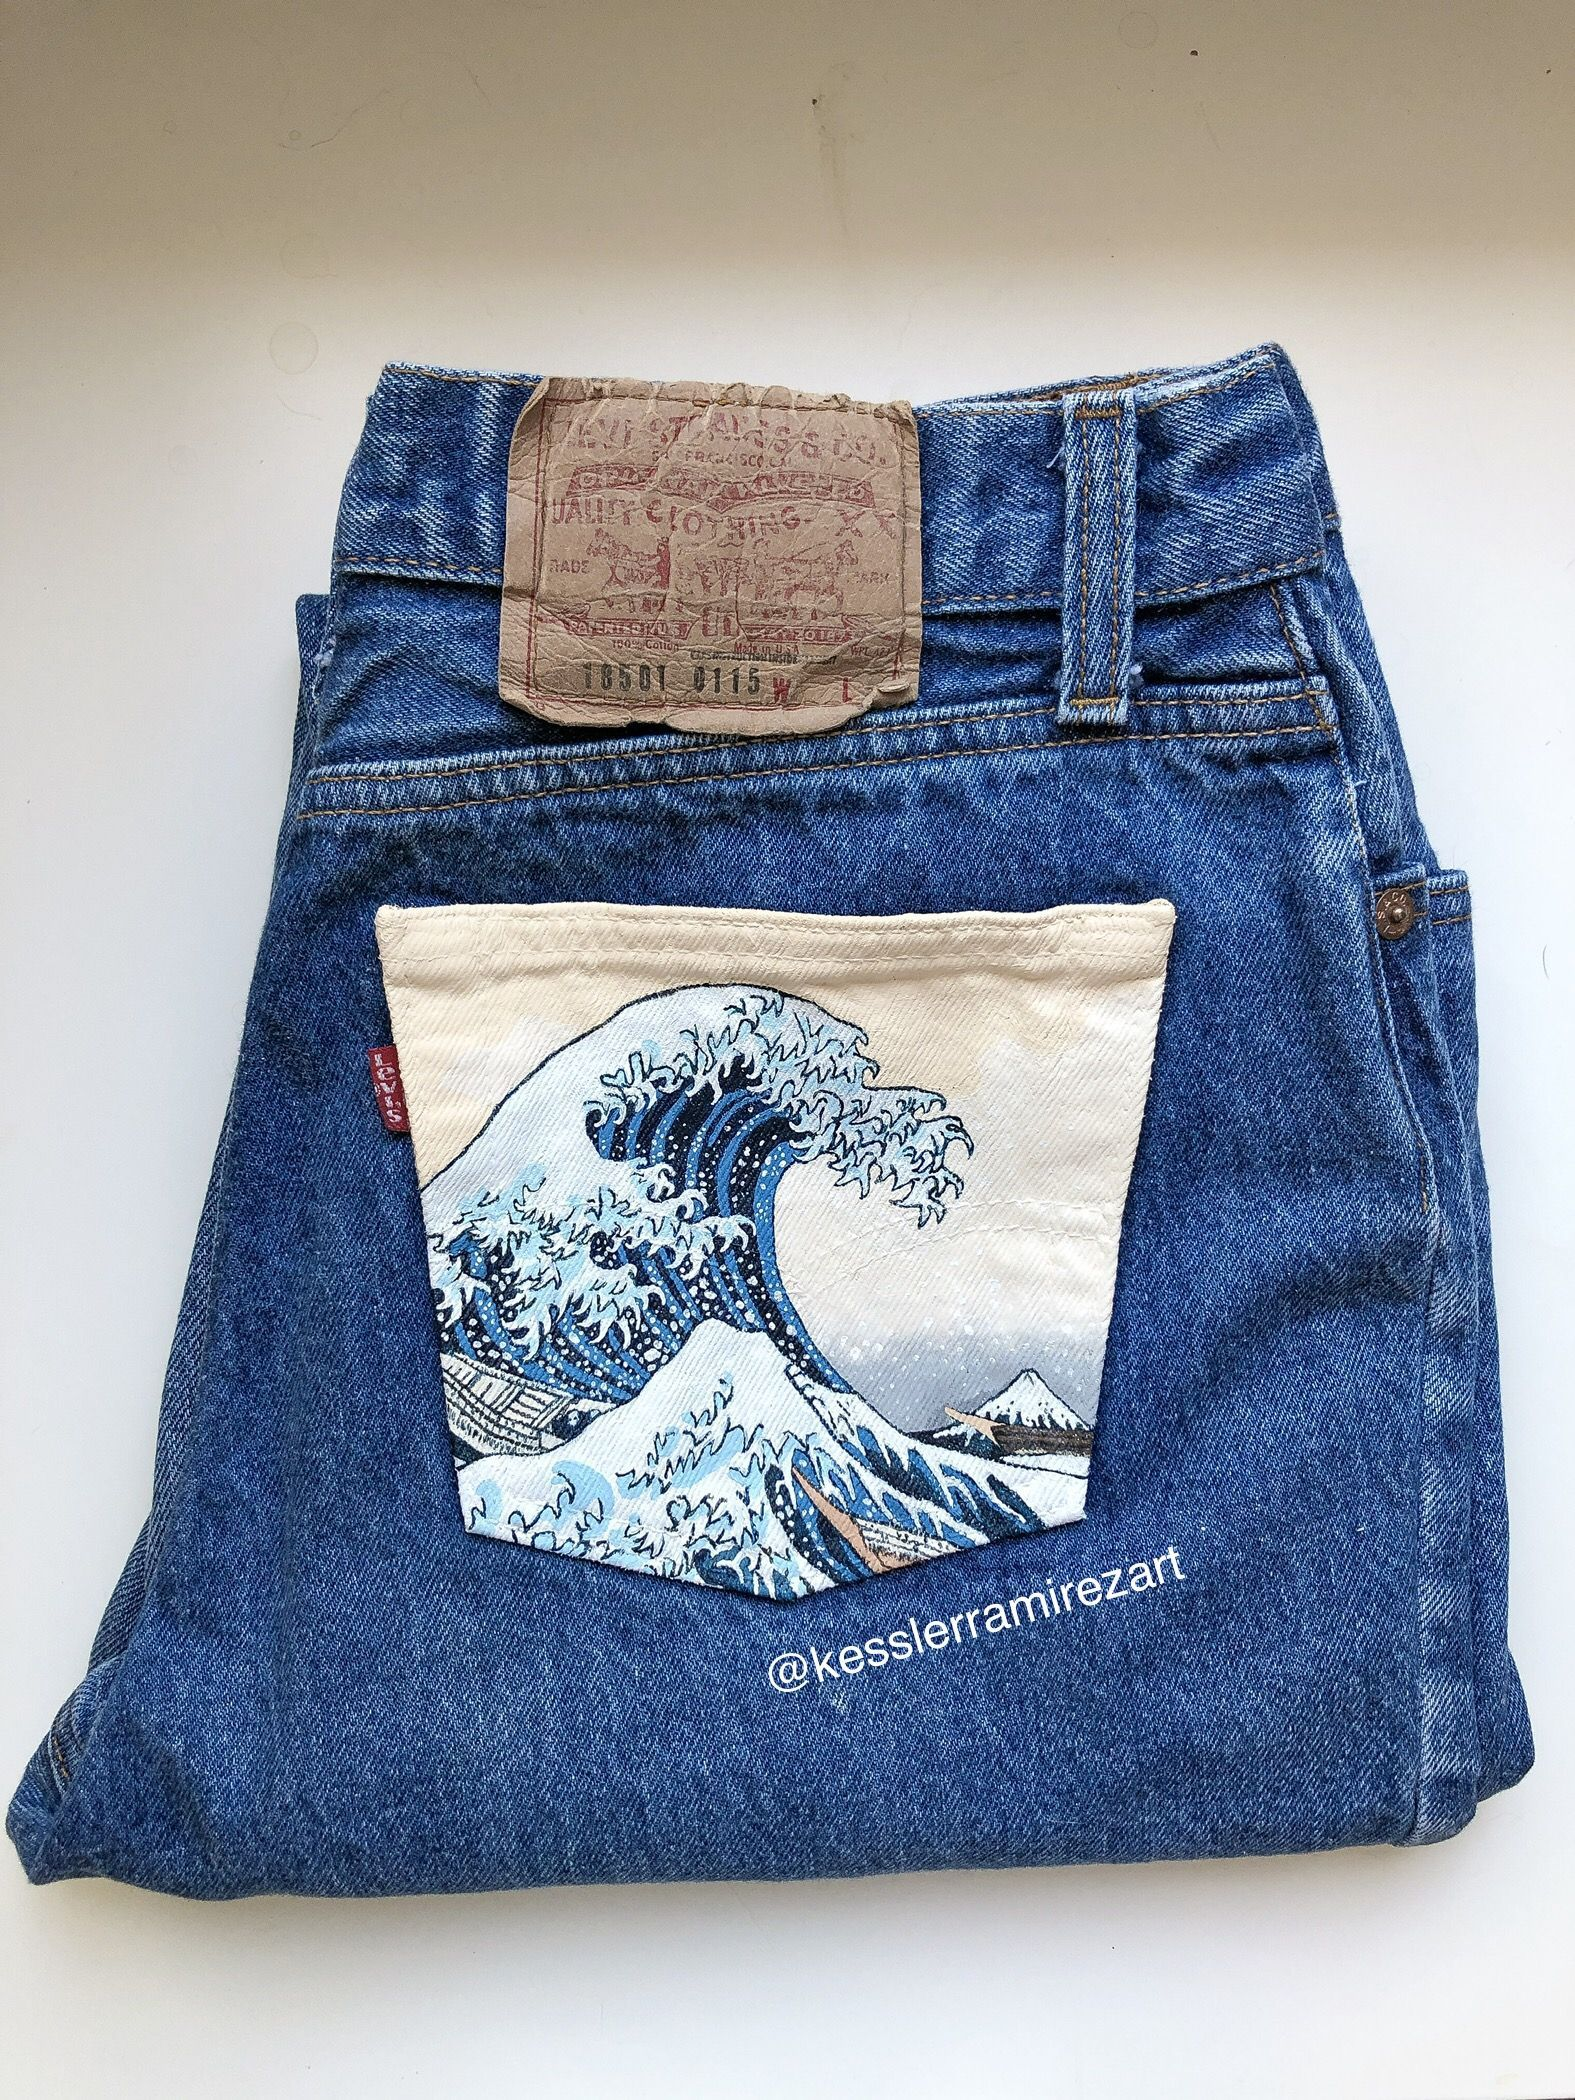 The Great Wave painted jeans by Kessler Ramirez Art- Custom order of The Great Wave Off Kanagawa by Hokusai painted on vintage Levi's by Kessler.  painted jeans, painted denim, painted fabric, denim art, denim painting, pocket painting, jeans pocket, jeans painting Best Picture For  fabric painting sunflower  For Your Taste You are looking for something, and it is going to tell you exactly what you are looking for, and you didn't find that picture. Here you will find the most beautiful picture